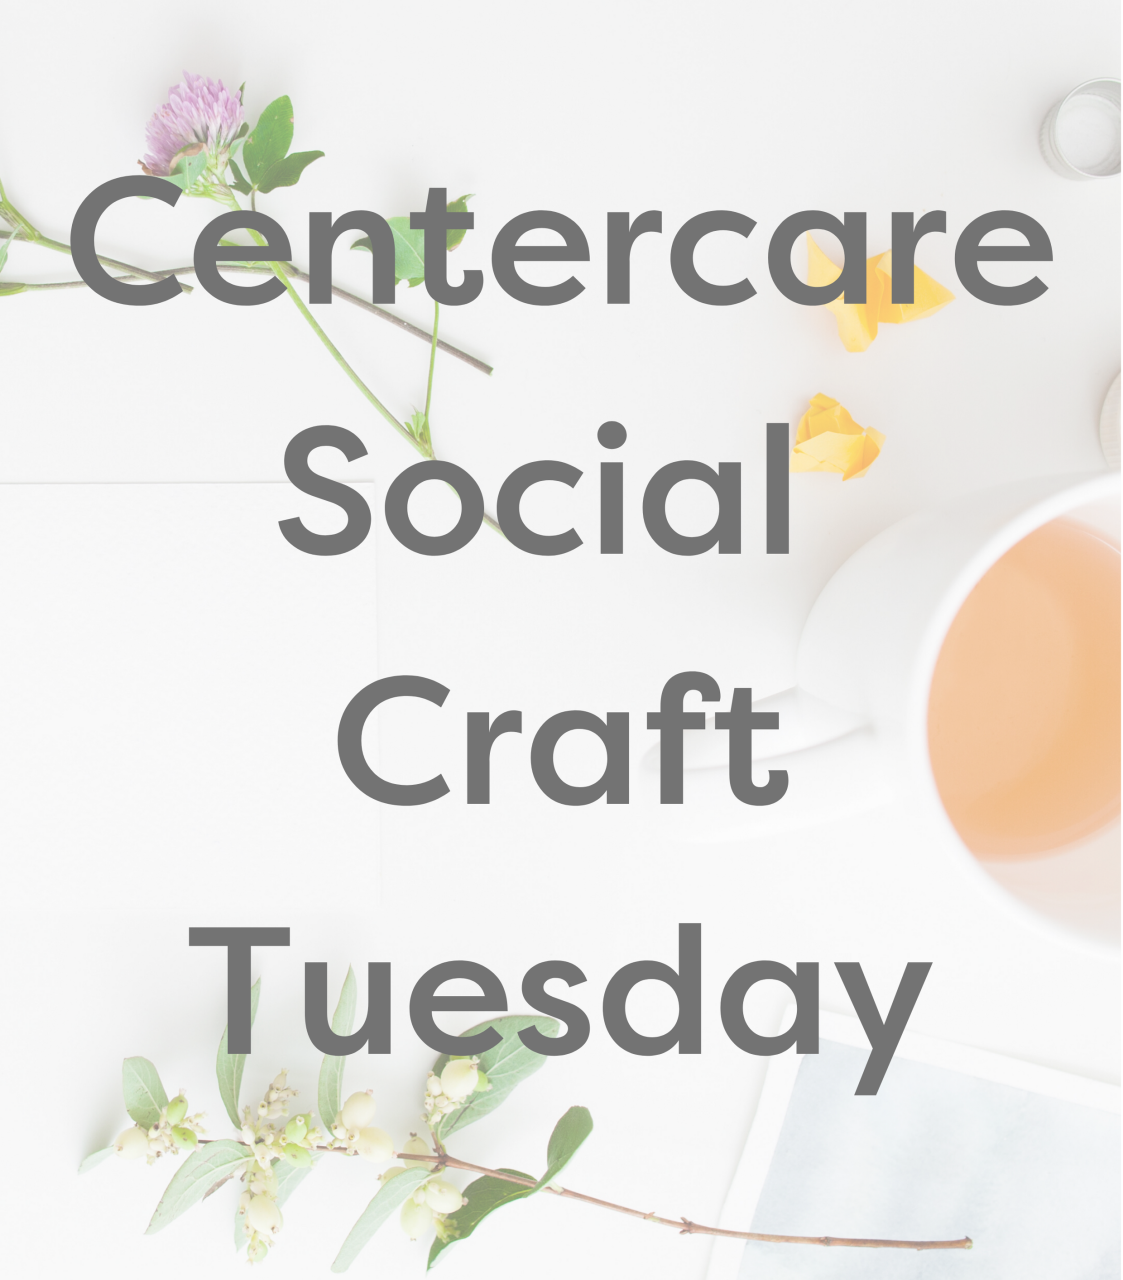 Centrecare Social Craft